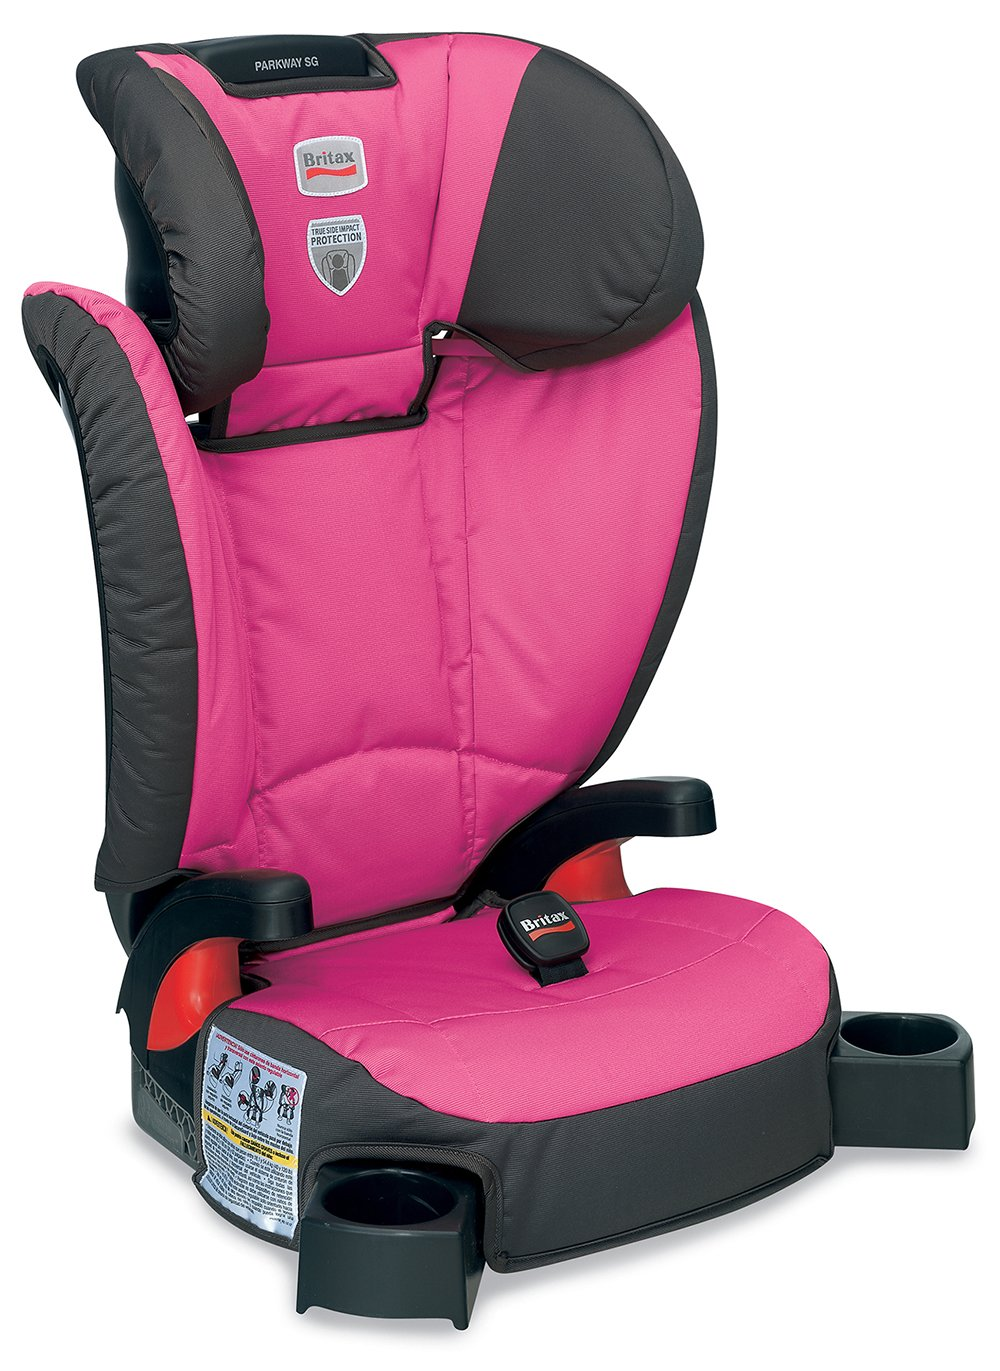 Amazon.com: Britax Parkway SG Belt-Positioning Booster Seat ...